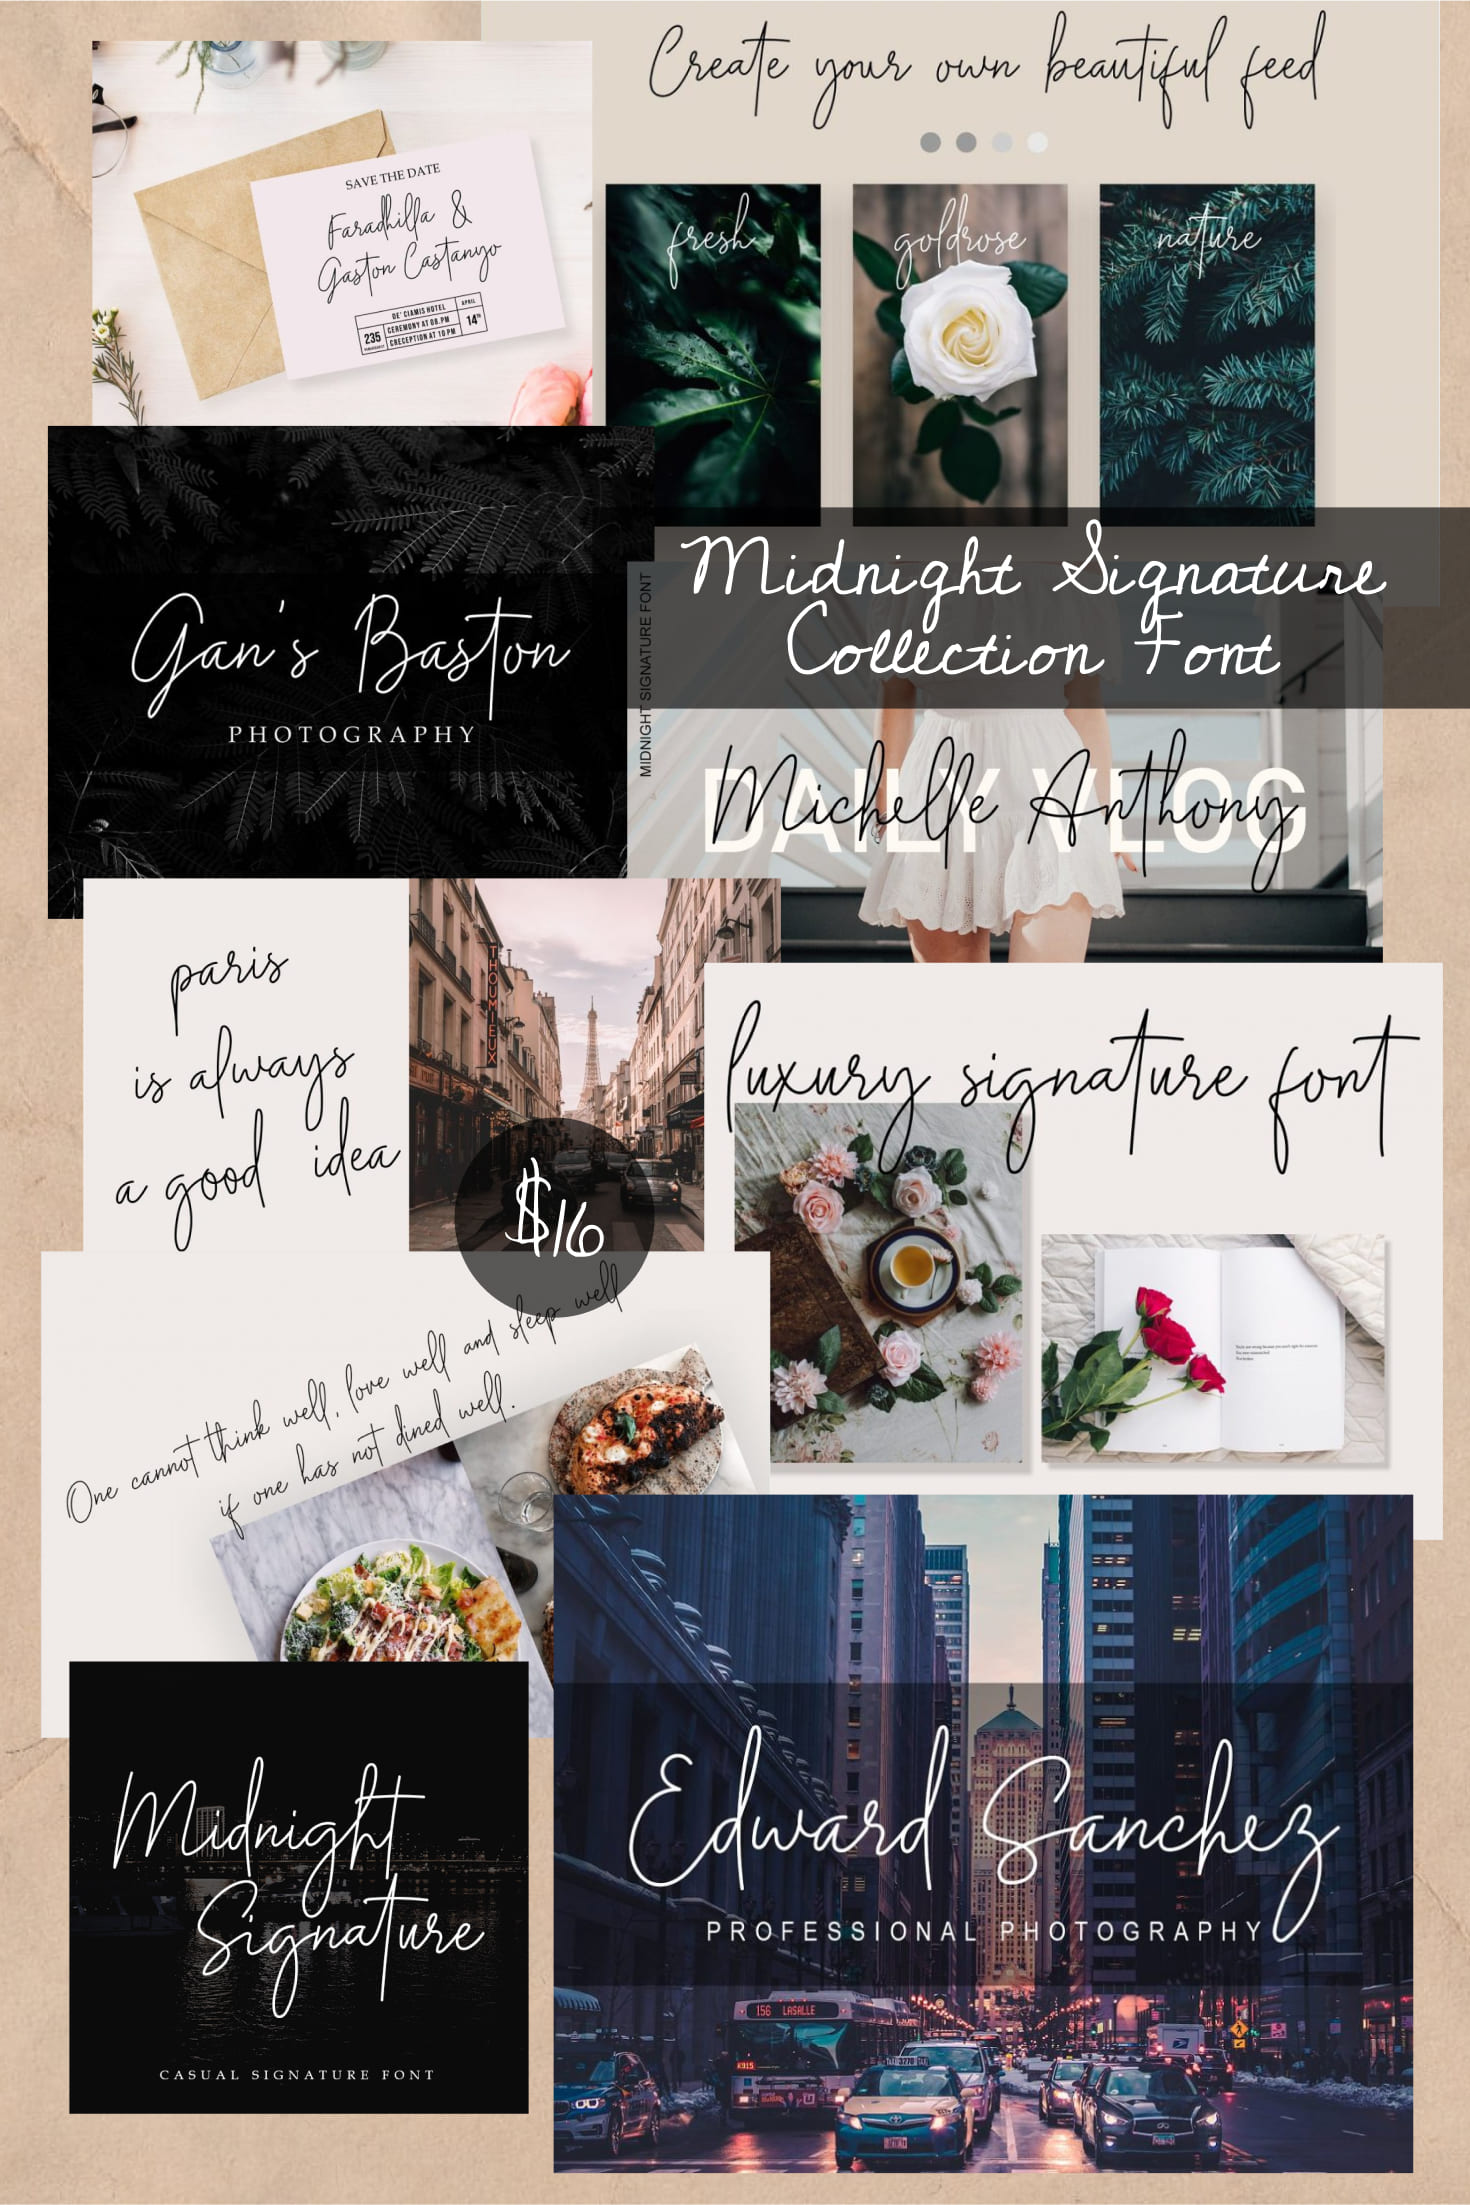 Pinterest Image: Midnight Signature Collection Font.